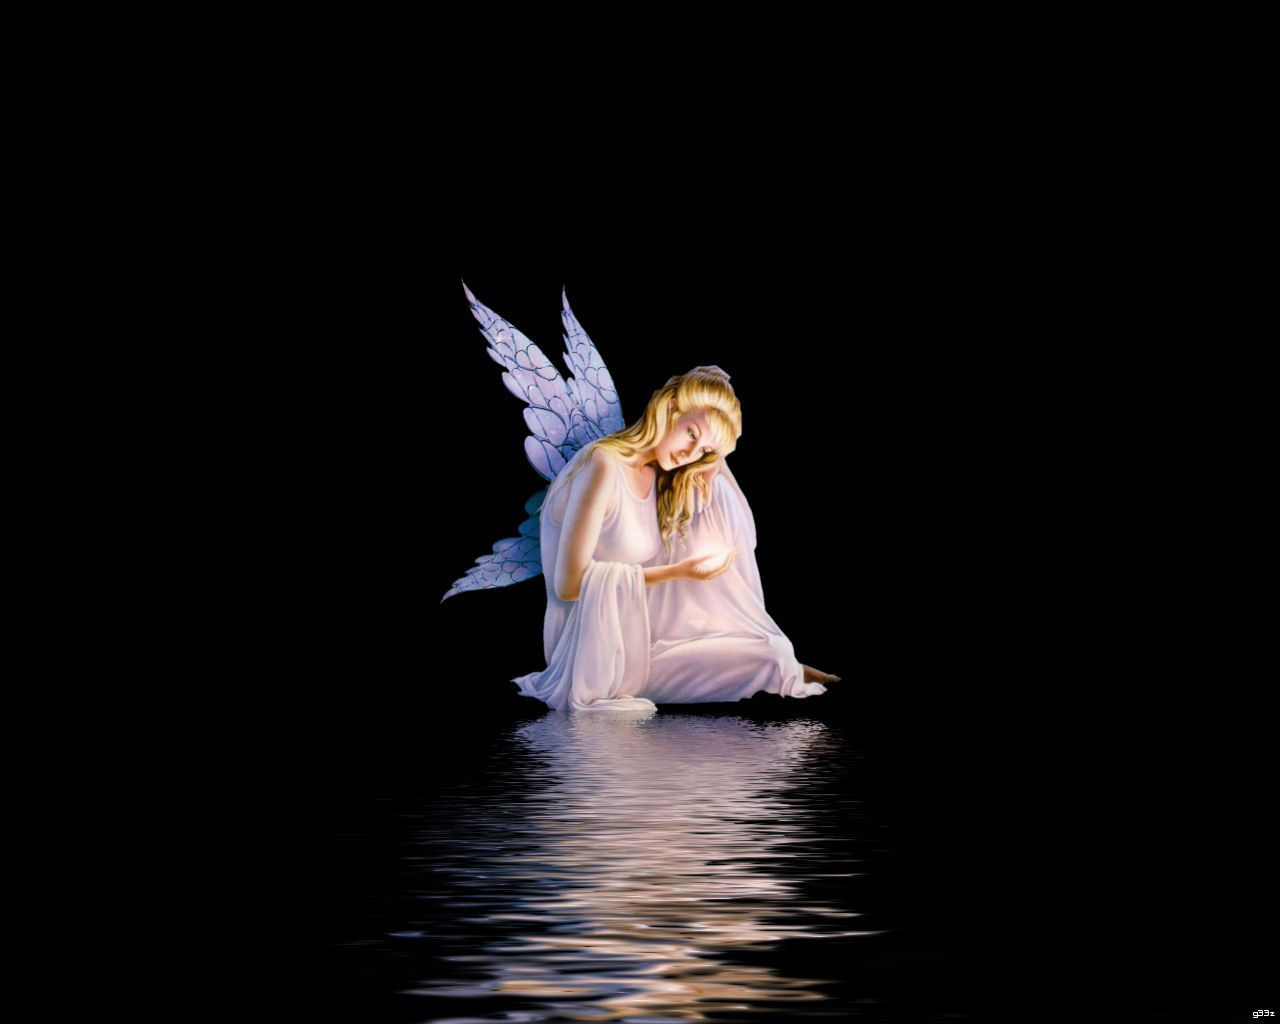 She Was My Angel Sent To Comfort Me When I Felt So Lost And Alone